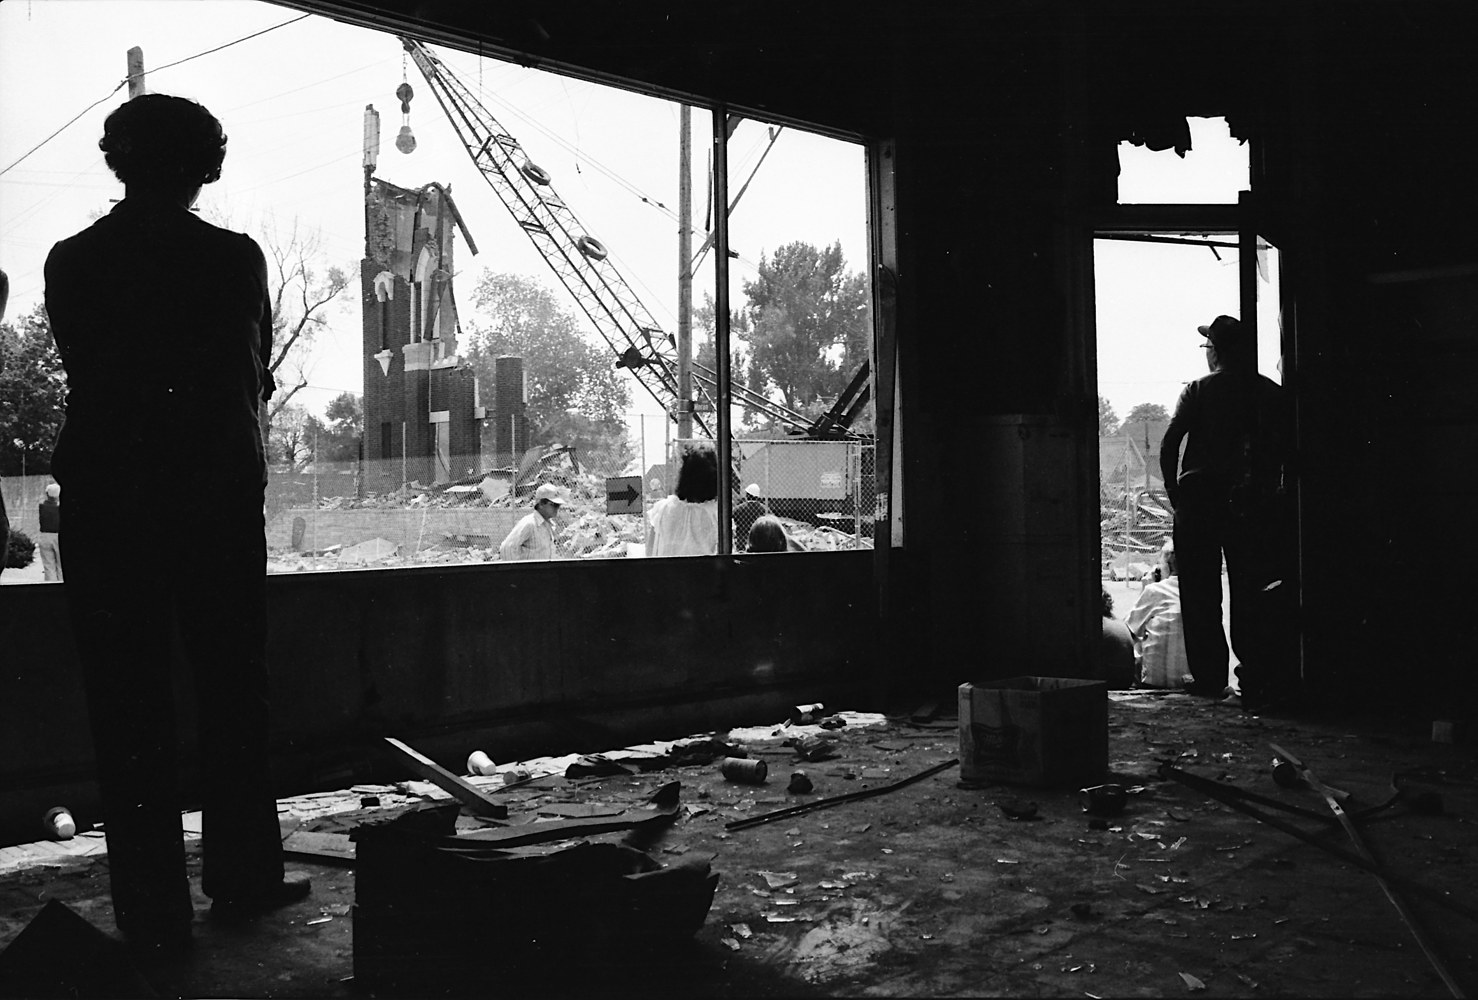 Print Eminent Domain, Hamtramck, 1979 by Kathleen Gross